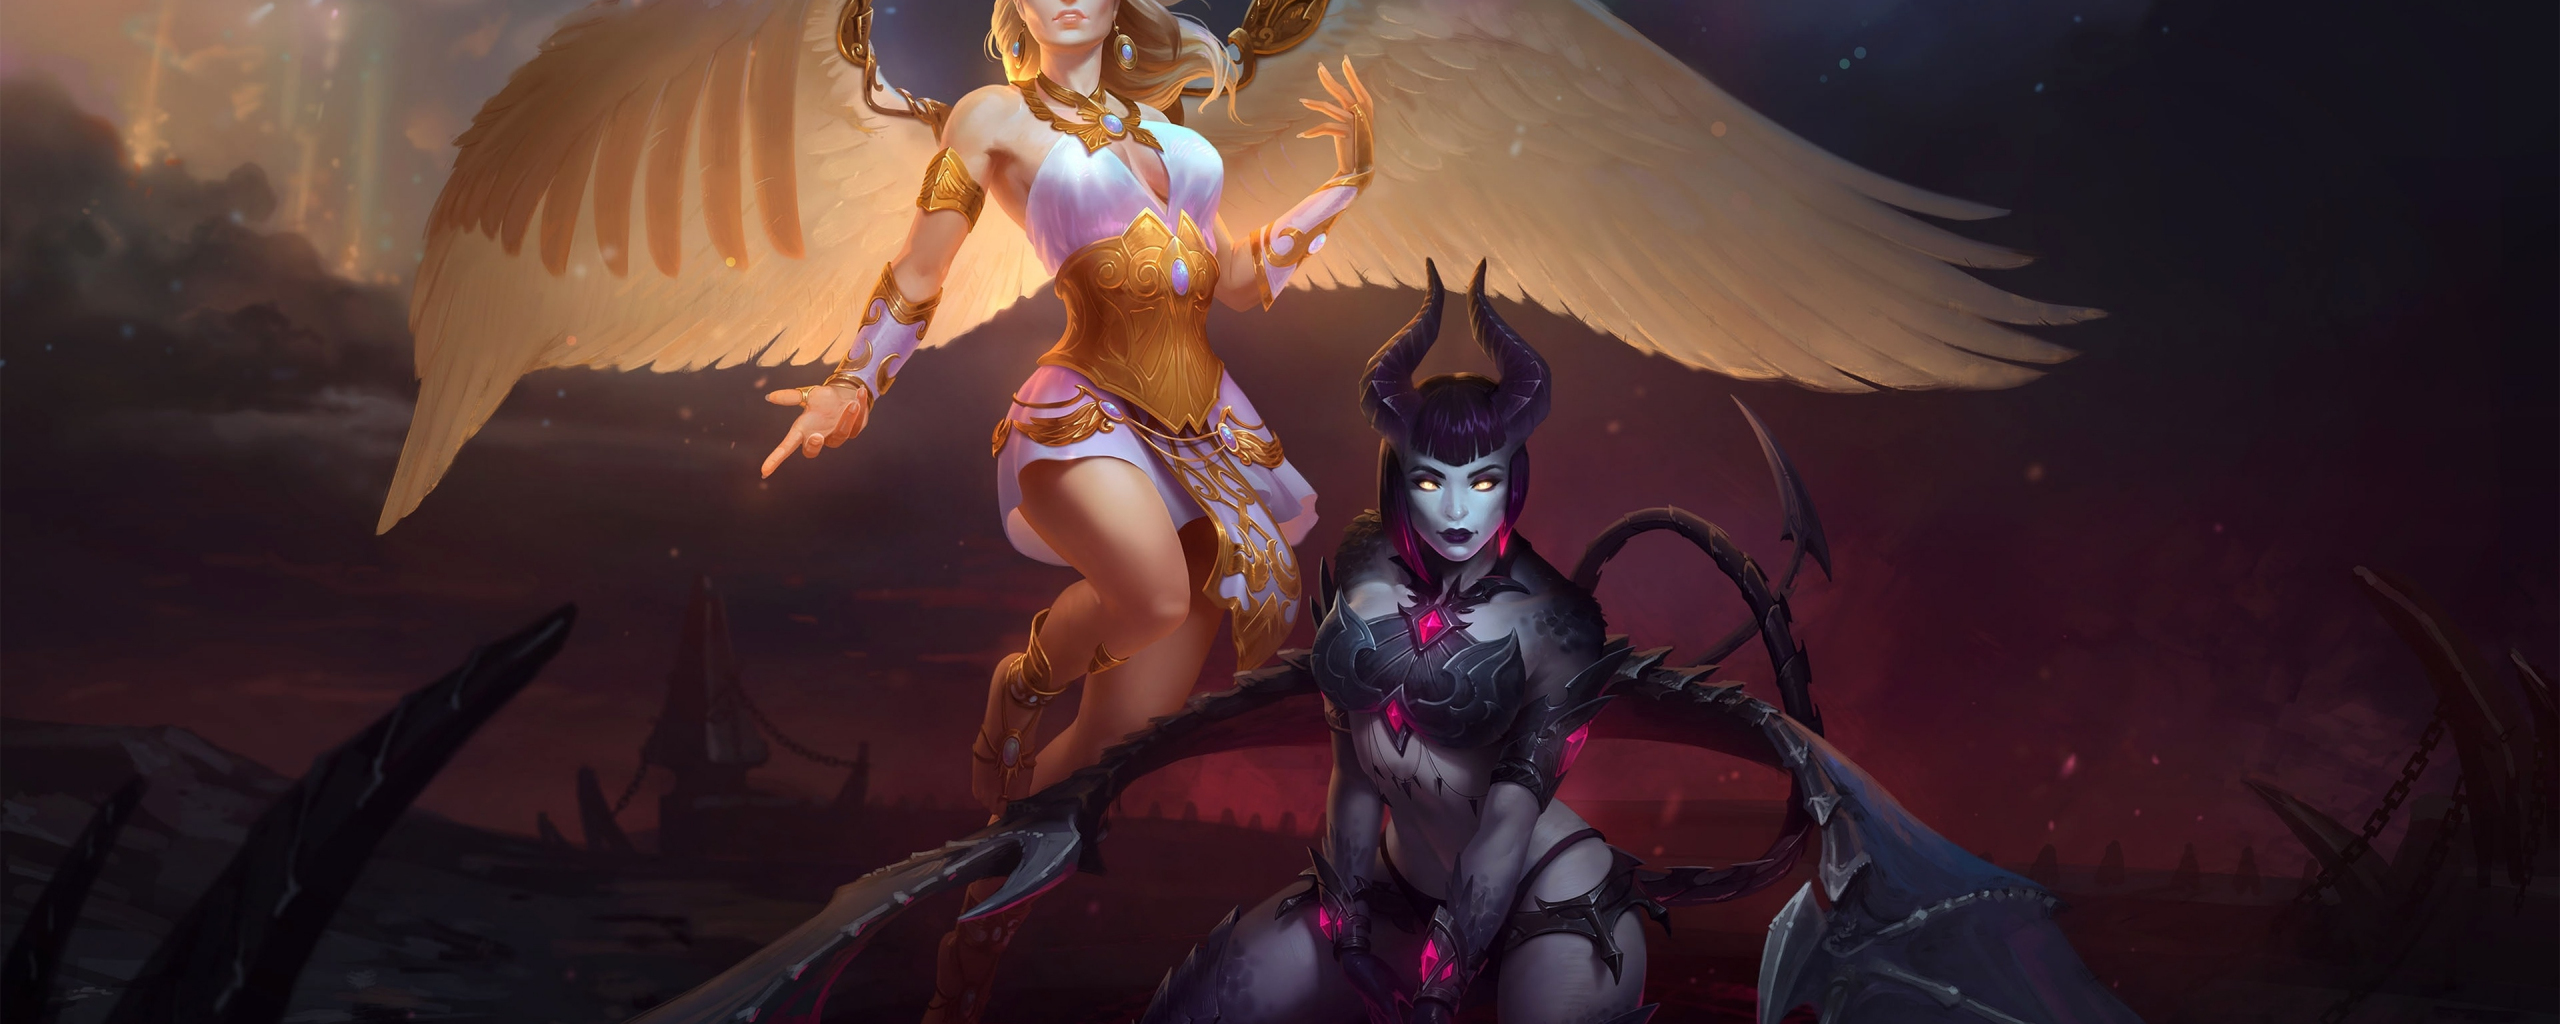 Download 750x1334 wallpaper 2019, smite, video game, angel and.